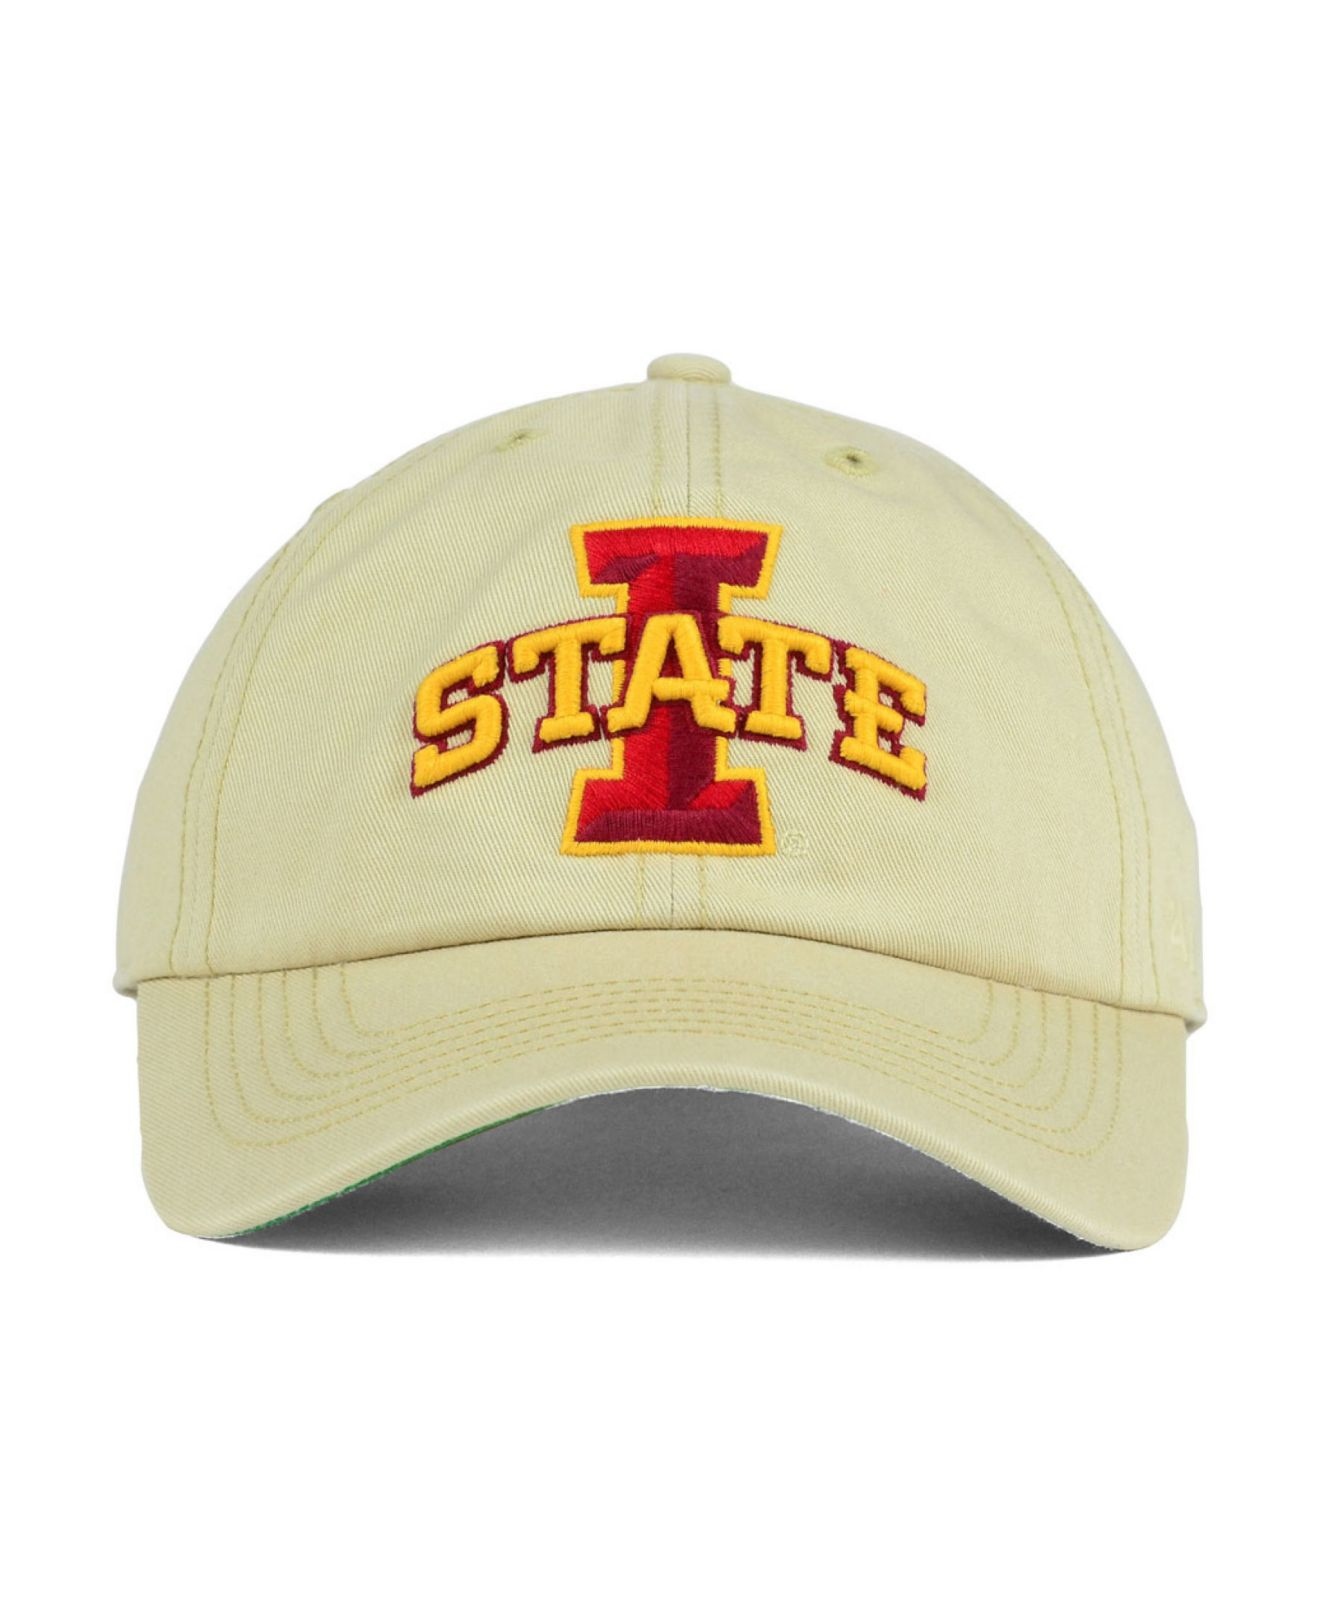 best service 2185d a761a ... usa lyst 47 brand iowa state cyclones franchise cap in natural for men  d085b 0d5f7